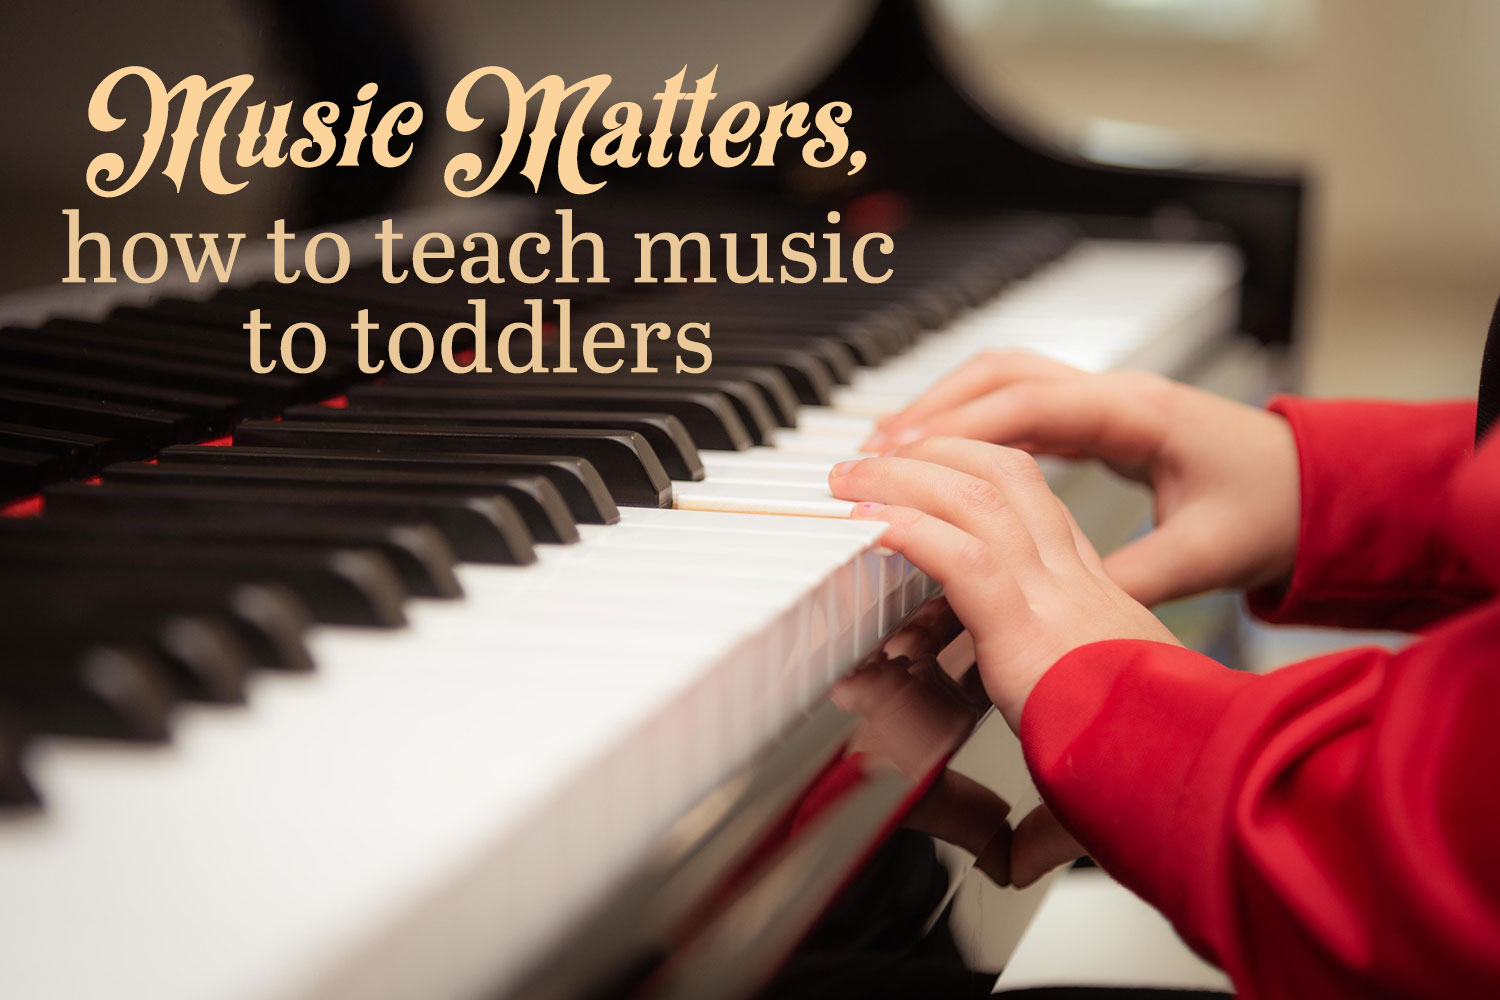 Music matters- how to teach music to toddlers